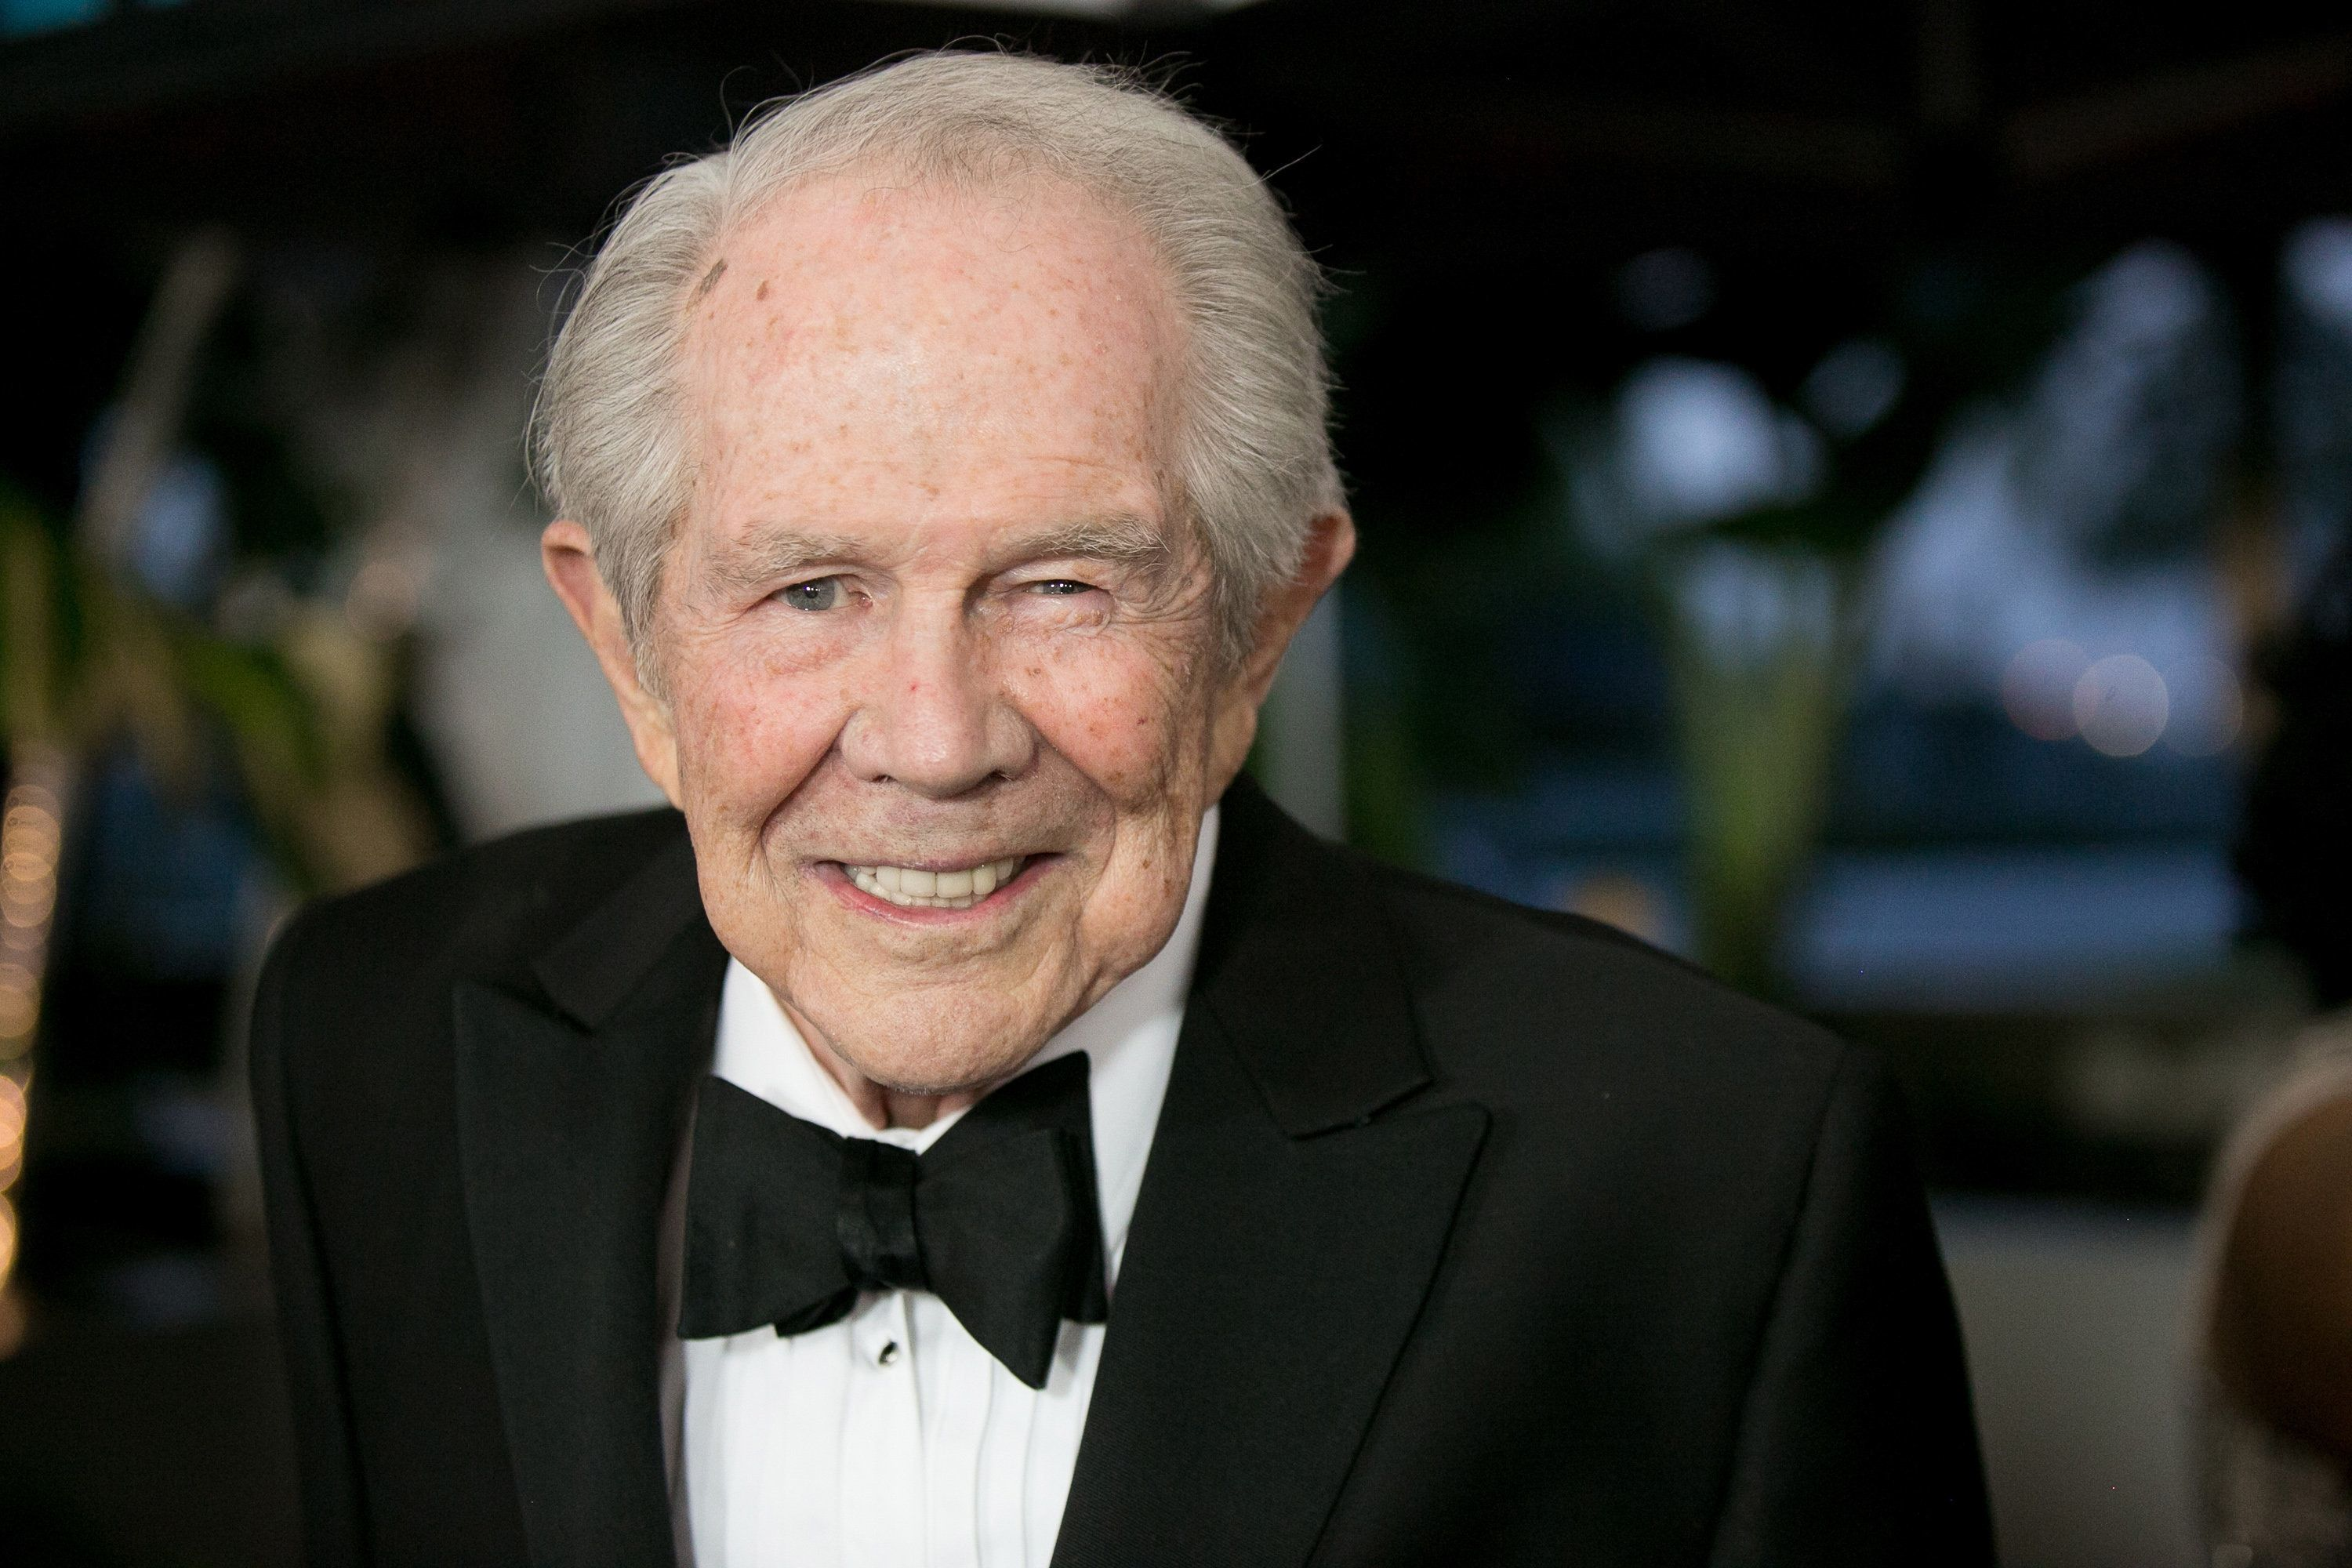 UNIVERSAL CITY, CA - FEBRUARY 10:  Pat Robertson arrives for the 25th annual Movieguide Awards - Faith and Family Gala at Universal Hilton Hotel on February 10, 2017 in Universal City, California.  (Photo by Gabriel Olsen/WireImage)